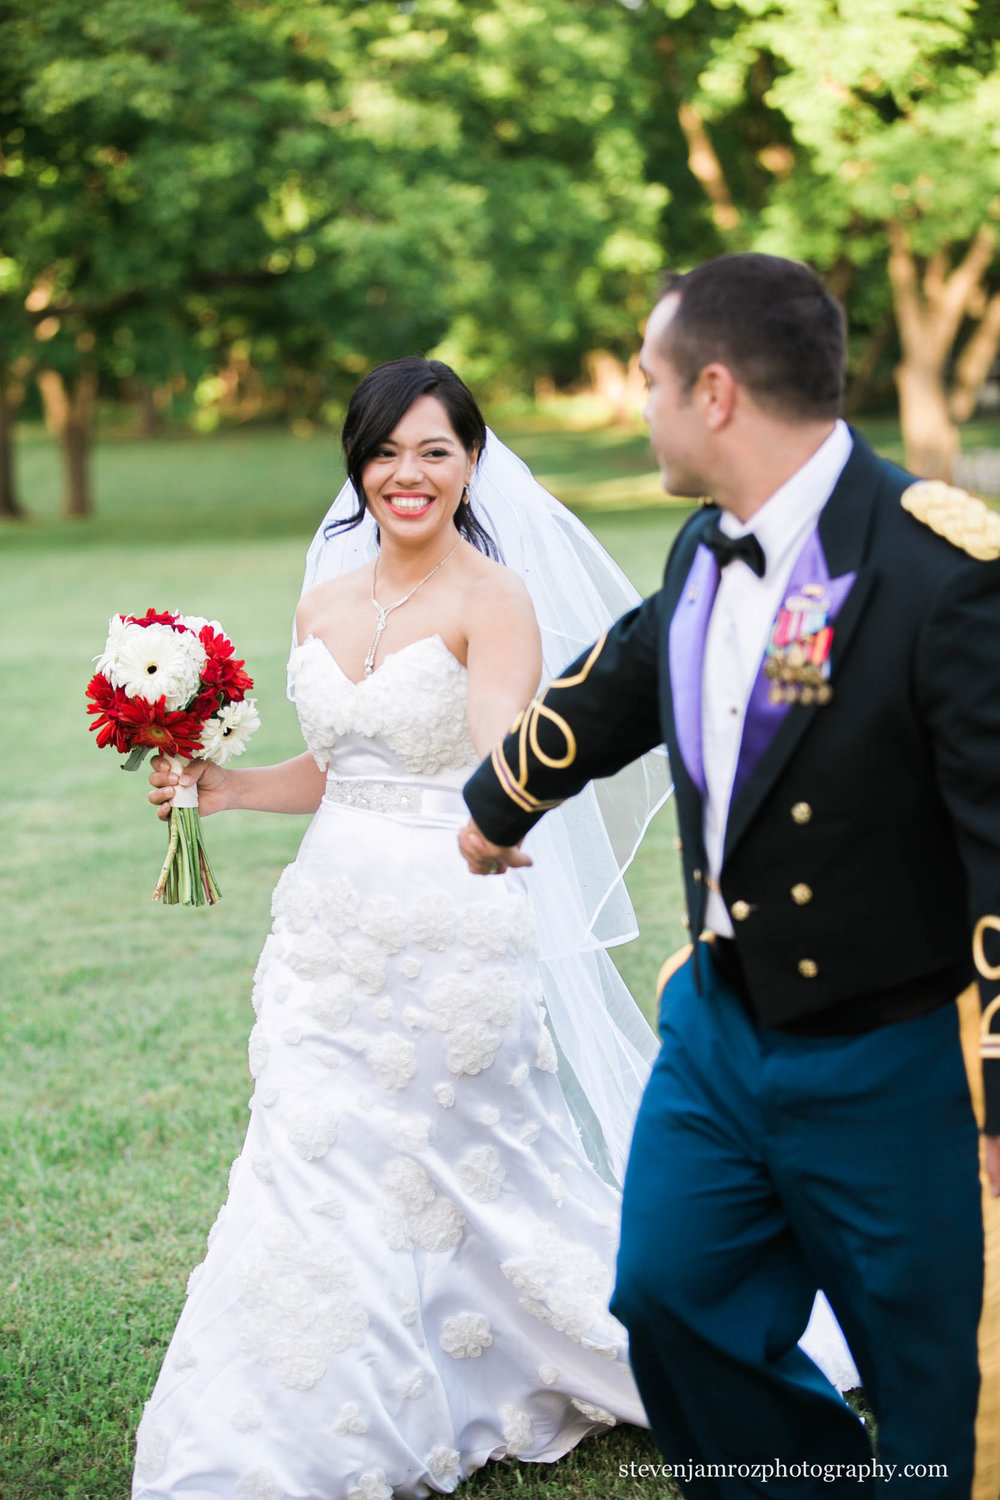 best-wedding photographer-magnolia-plantation-nc-steven-jamroz-0656.jpg